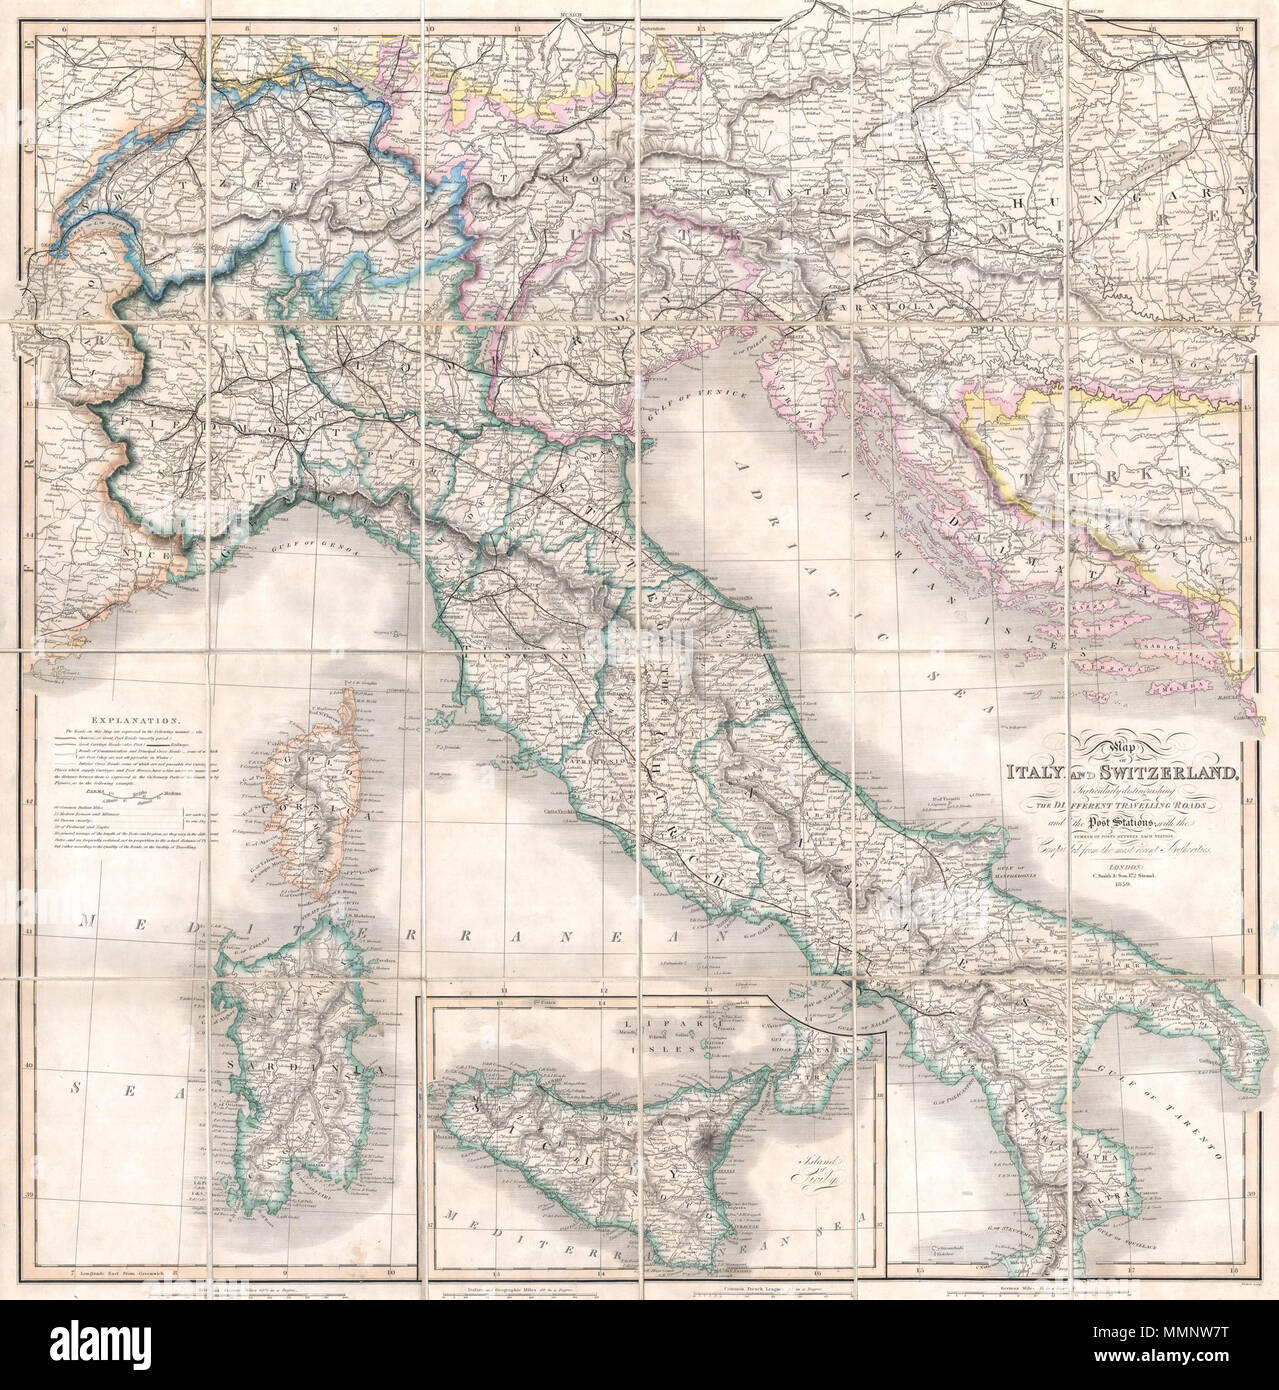 Basic Map Of Italy.English A Rare And Beautiful Case Format Map Of Italy And